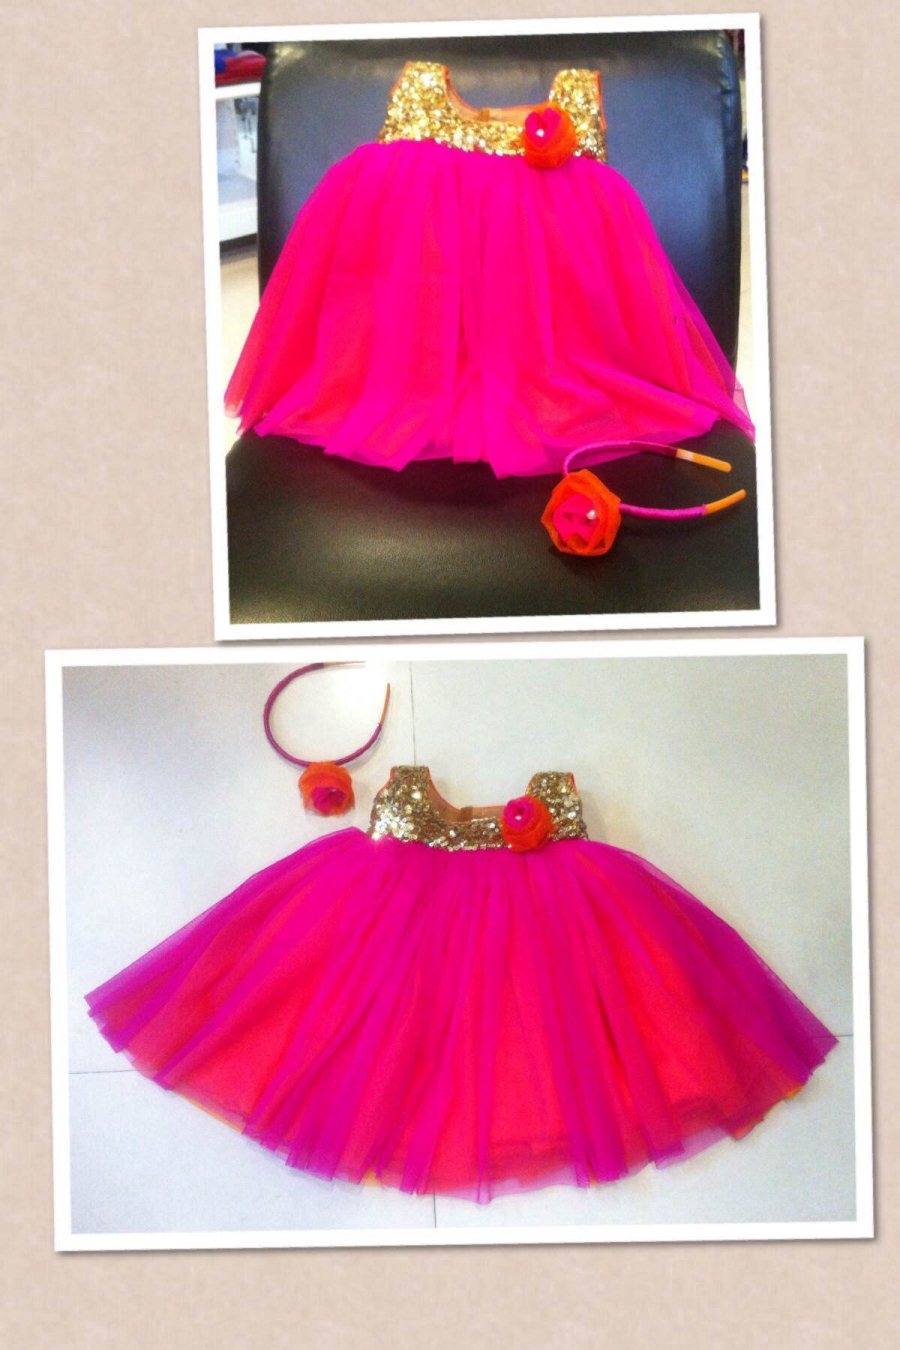 Pink n orange frock for 3 months old with hairband